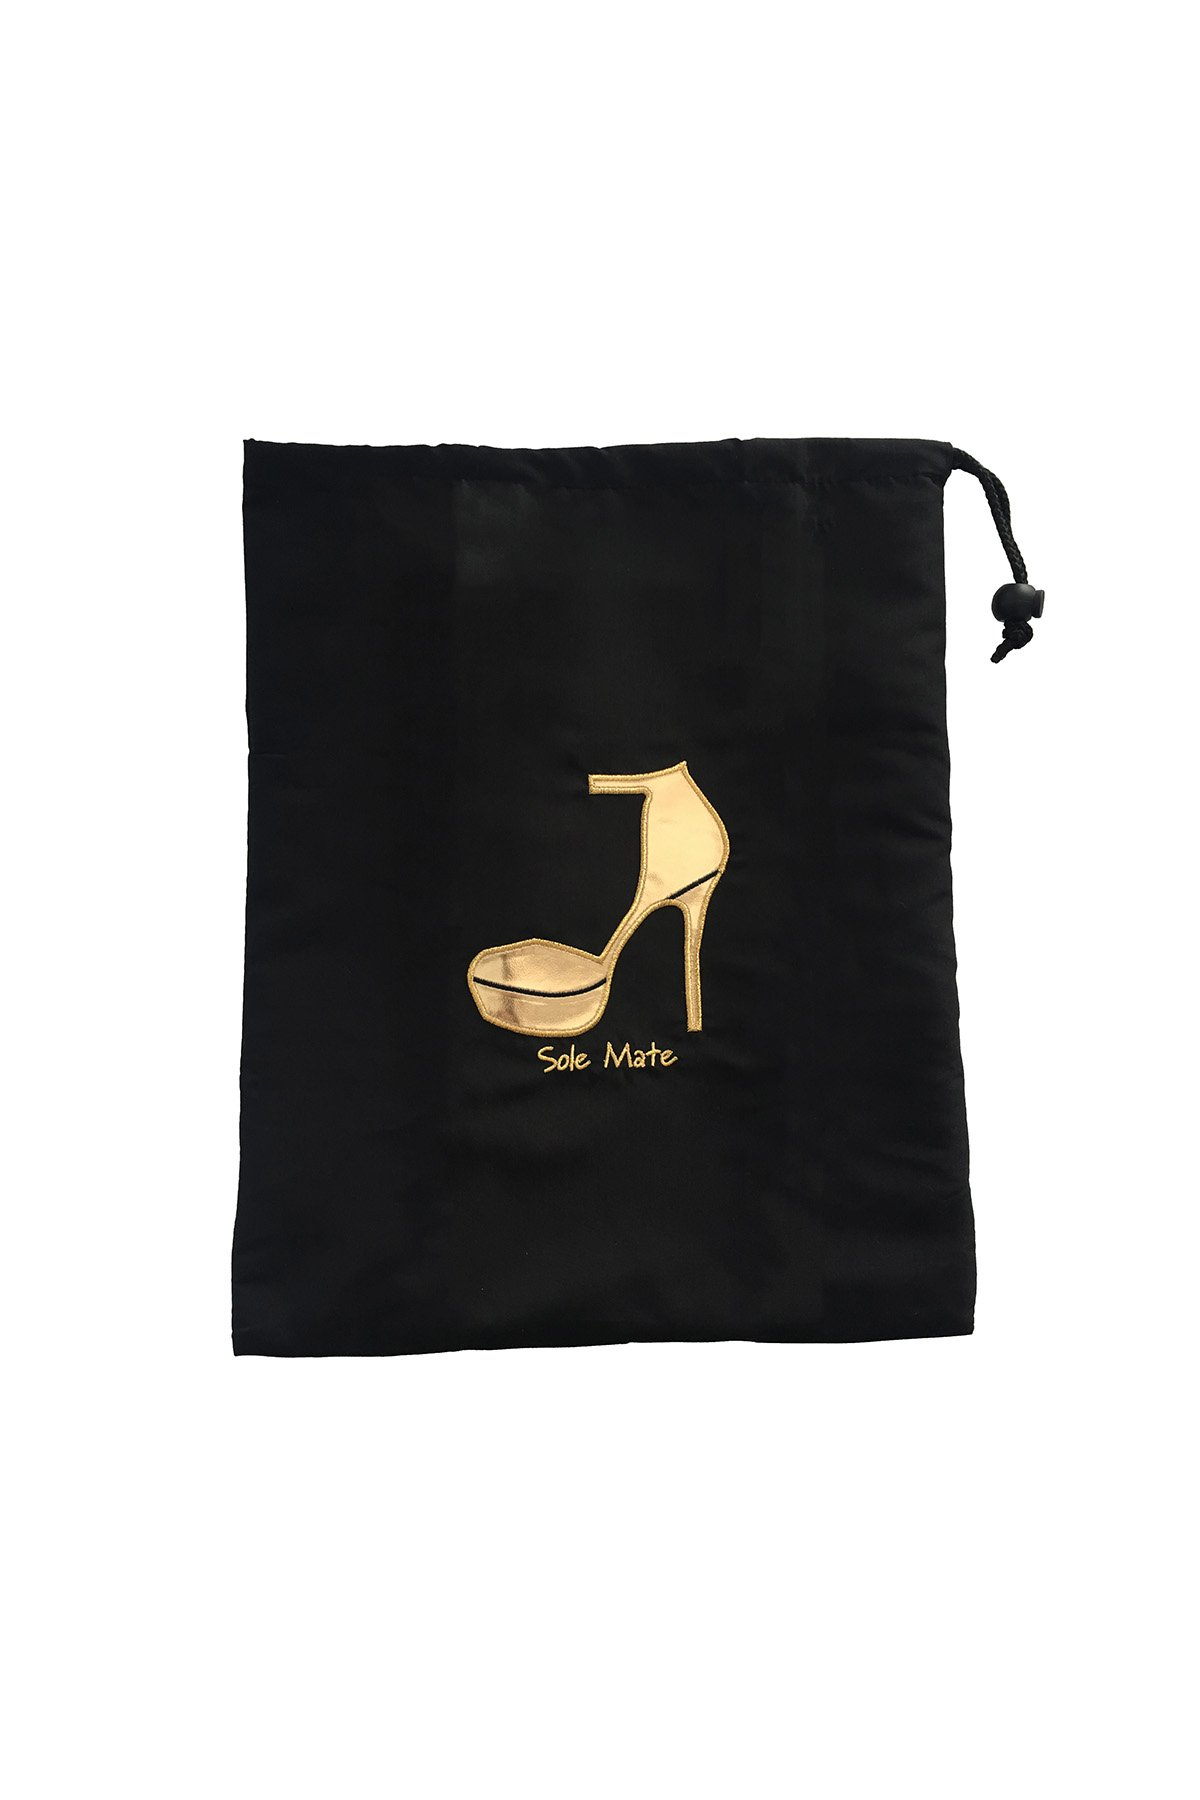 New Style Miamica Embroidered ''Sole Mate'' Travel Gold Heel and Black Shoe Bag Storage Accessories Organizer